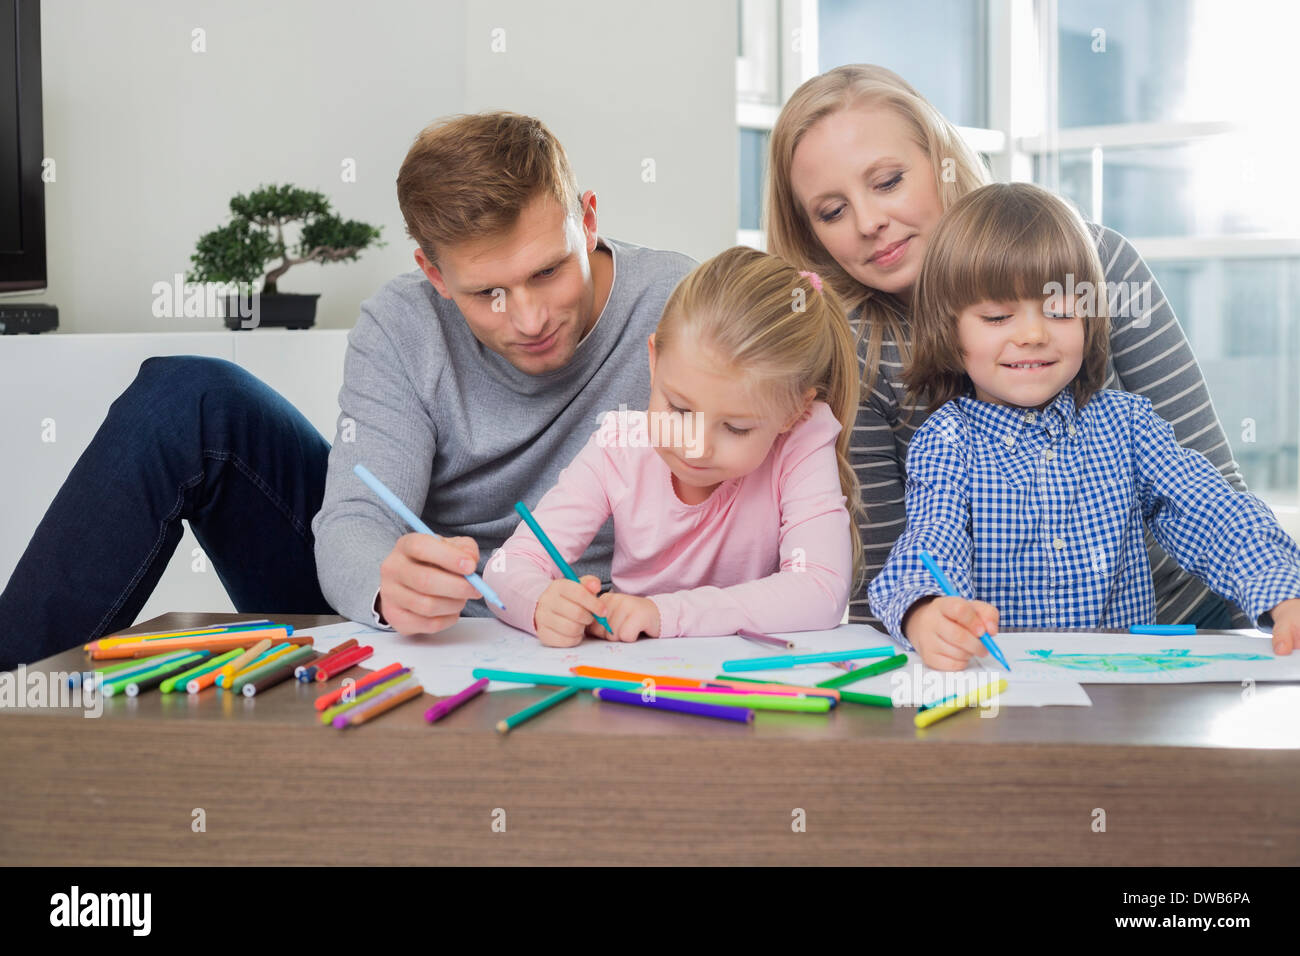 Mid adult parents with children drawing together at home - Stock Image